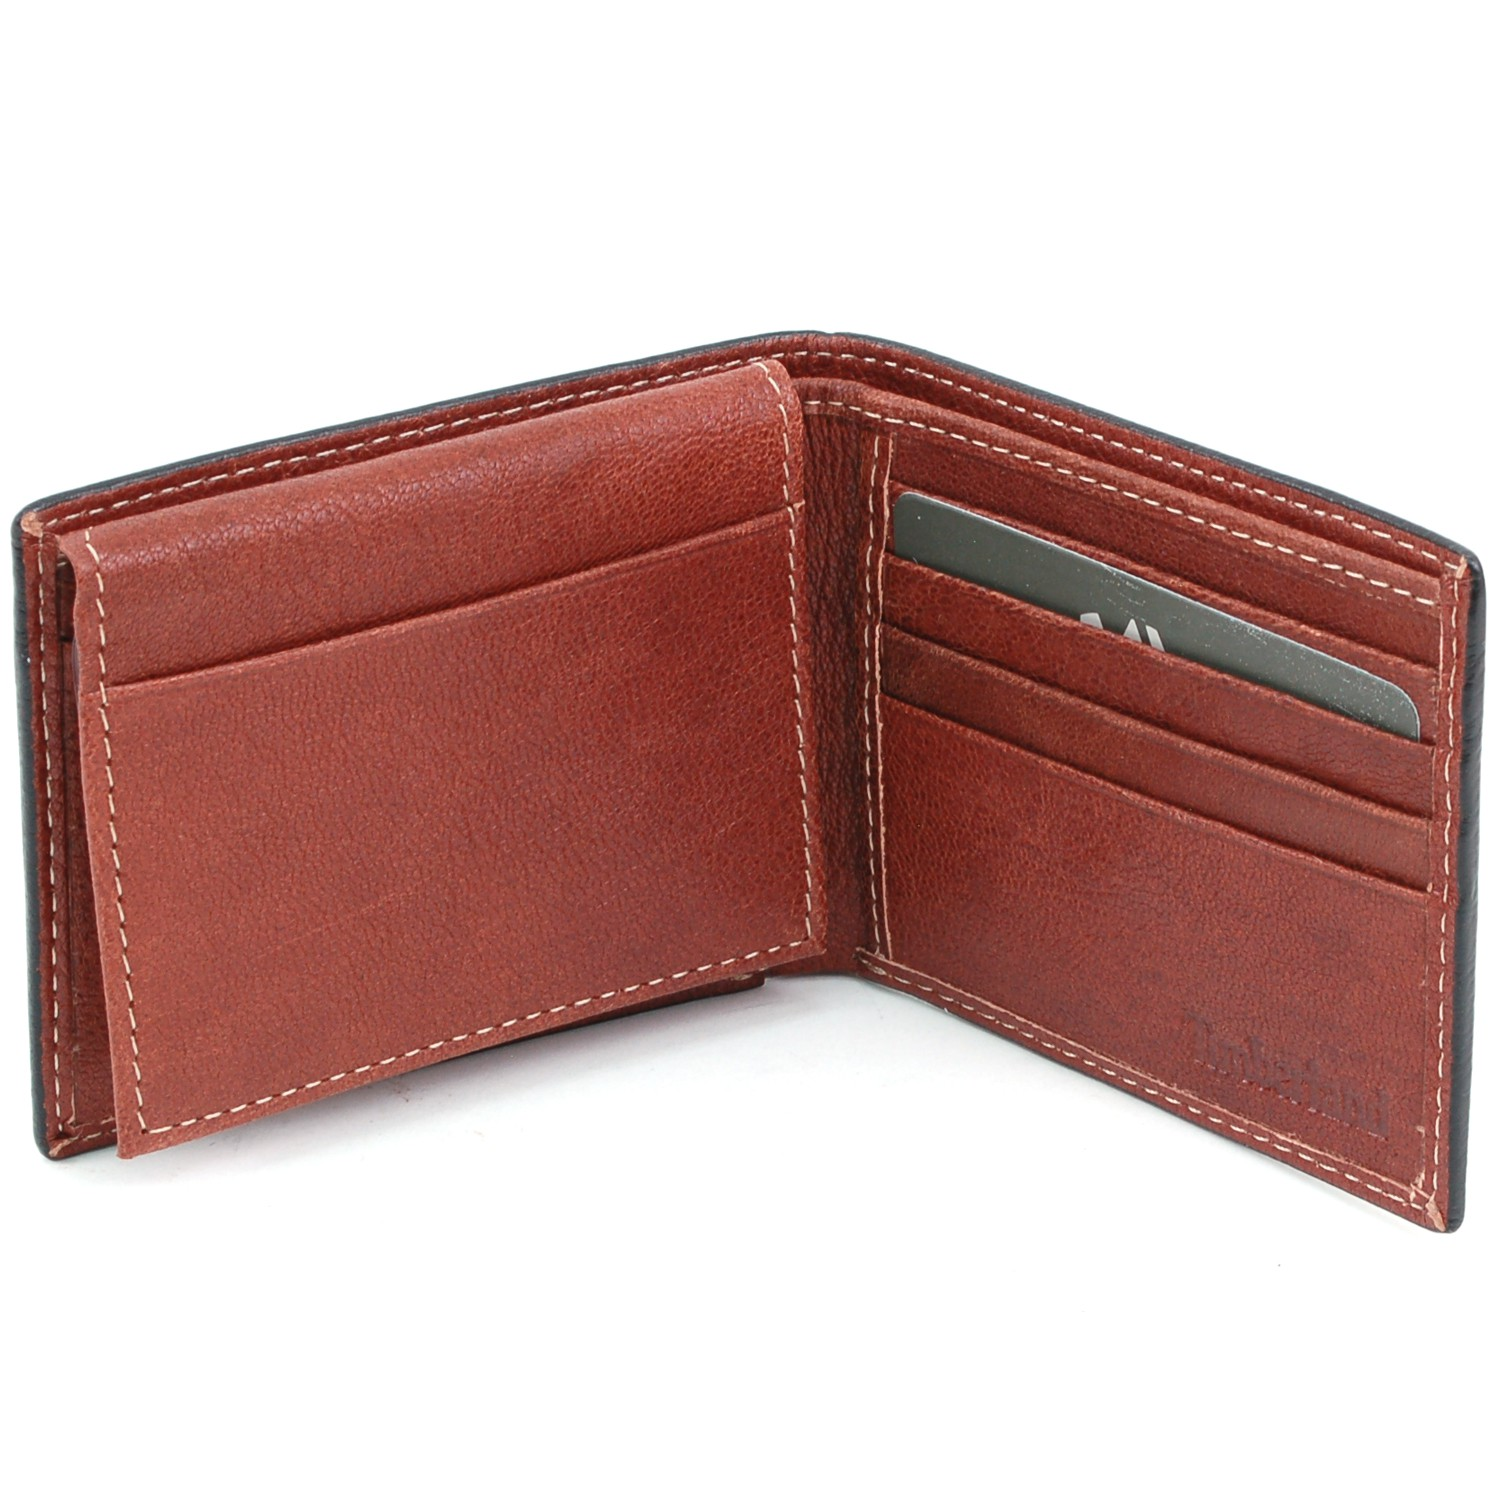 Timberland Mens Wallet Bifold Passcase Genuine Leather 2 ...